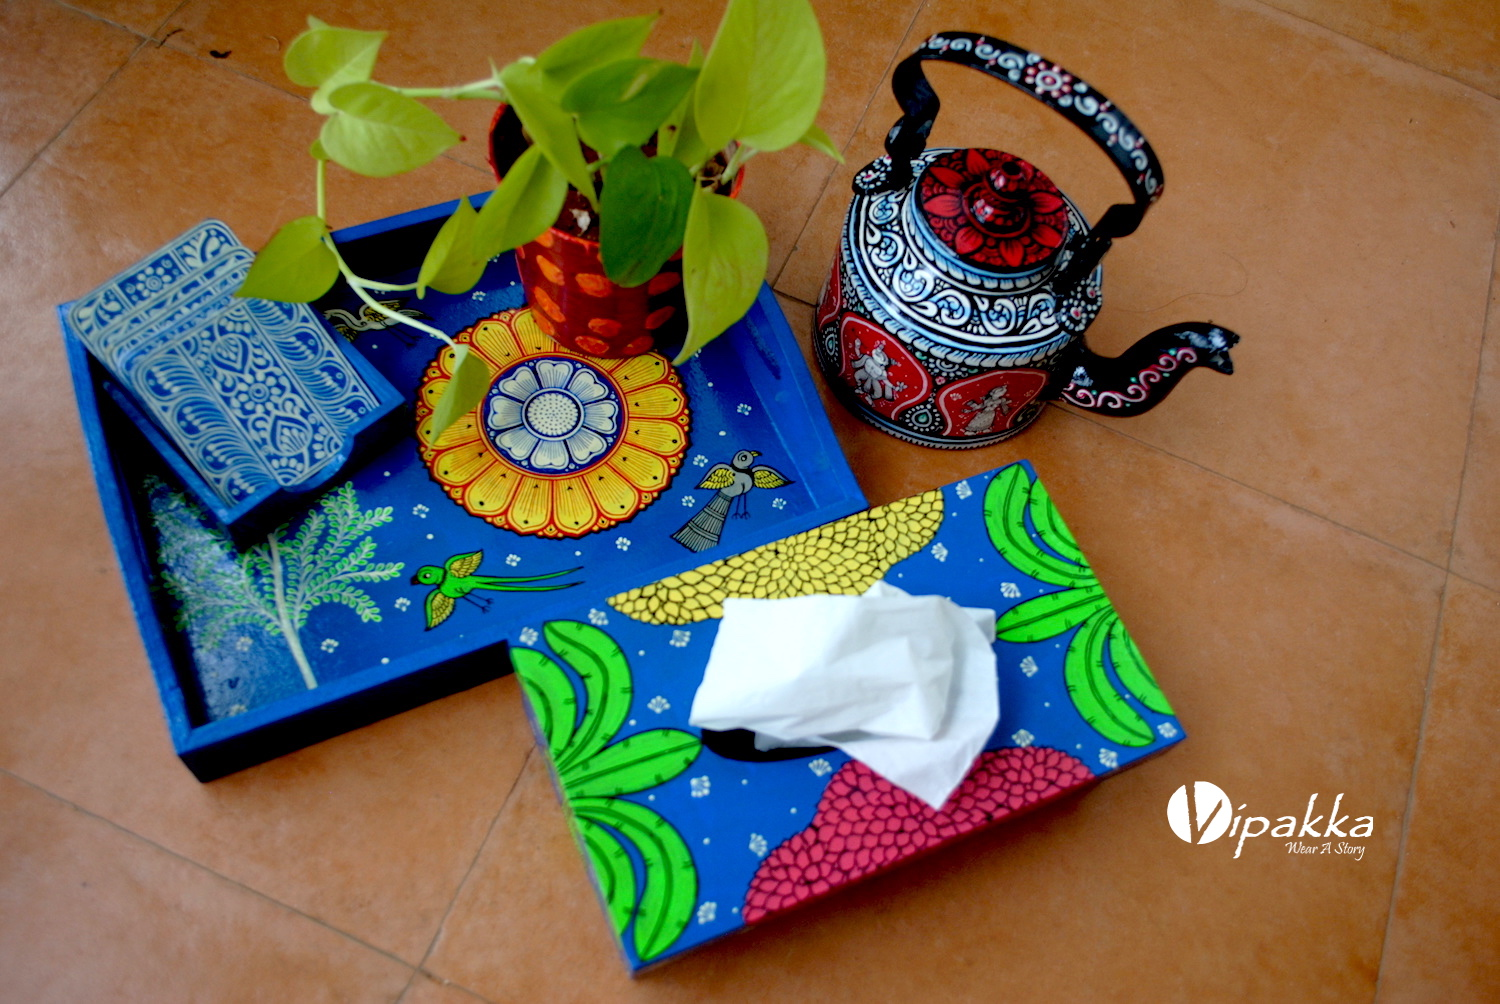 Vipakka-gifting-combo-3 Top 6 Gift Ideas To Make This Diwali Special